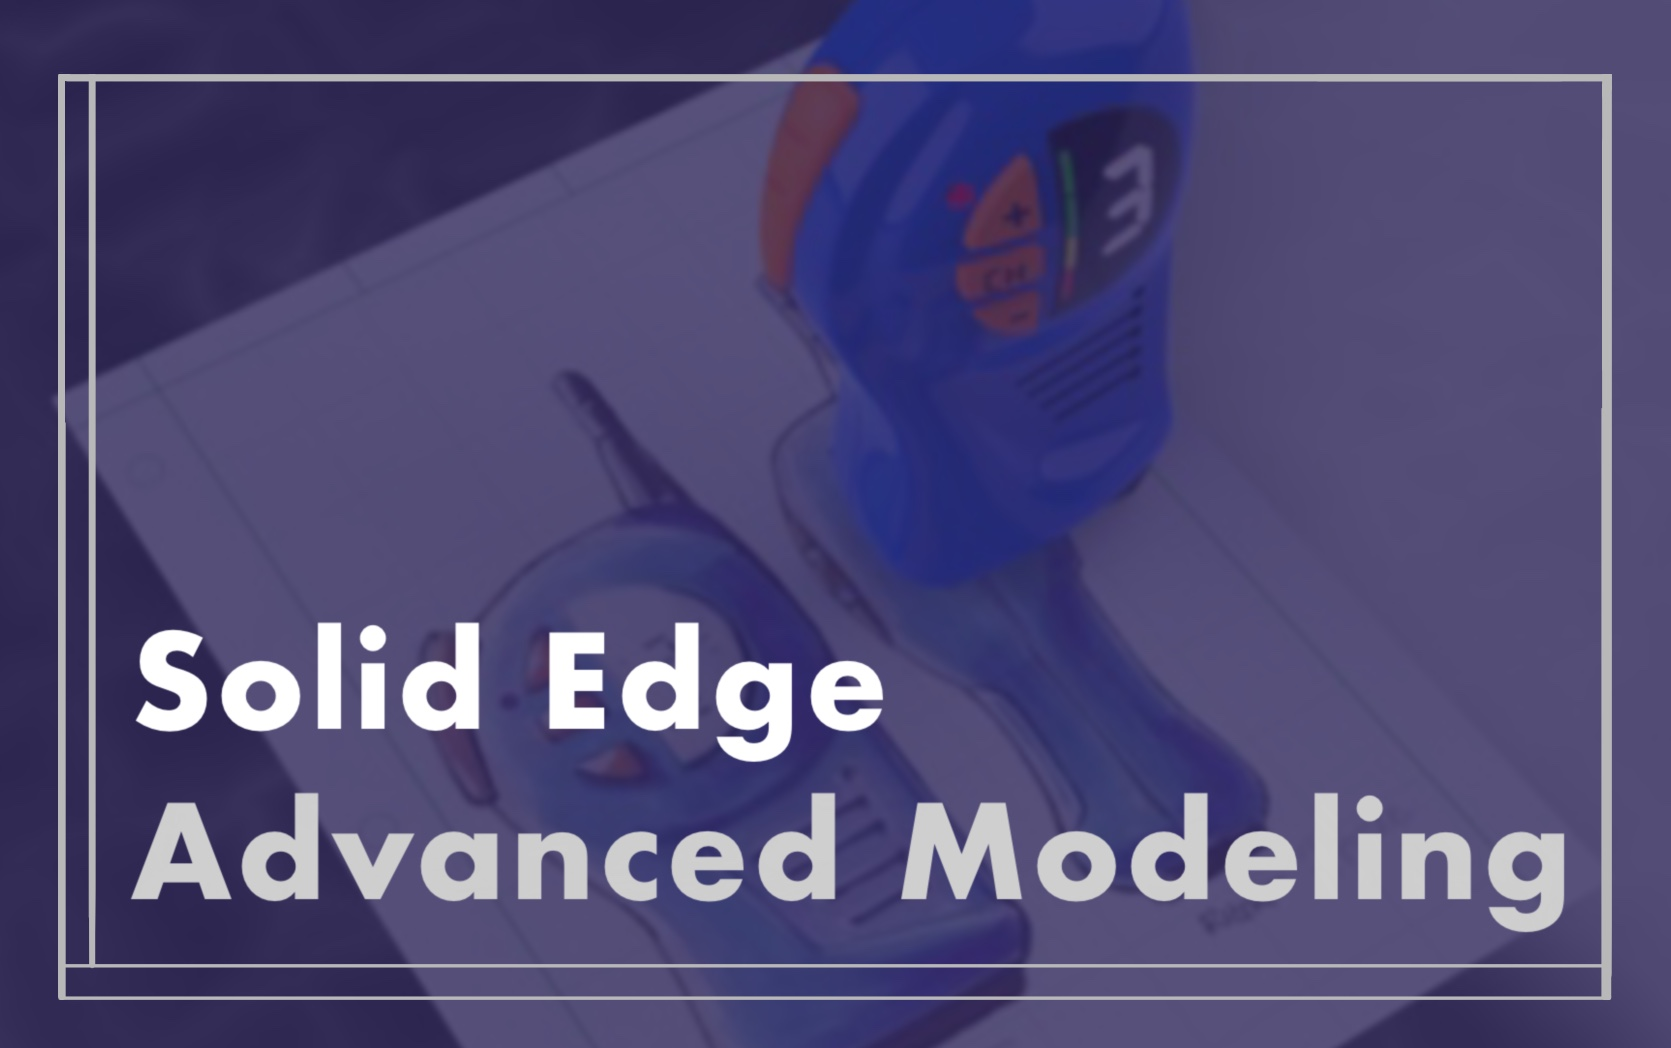 Solid Edge Advanced Modeling